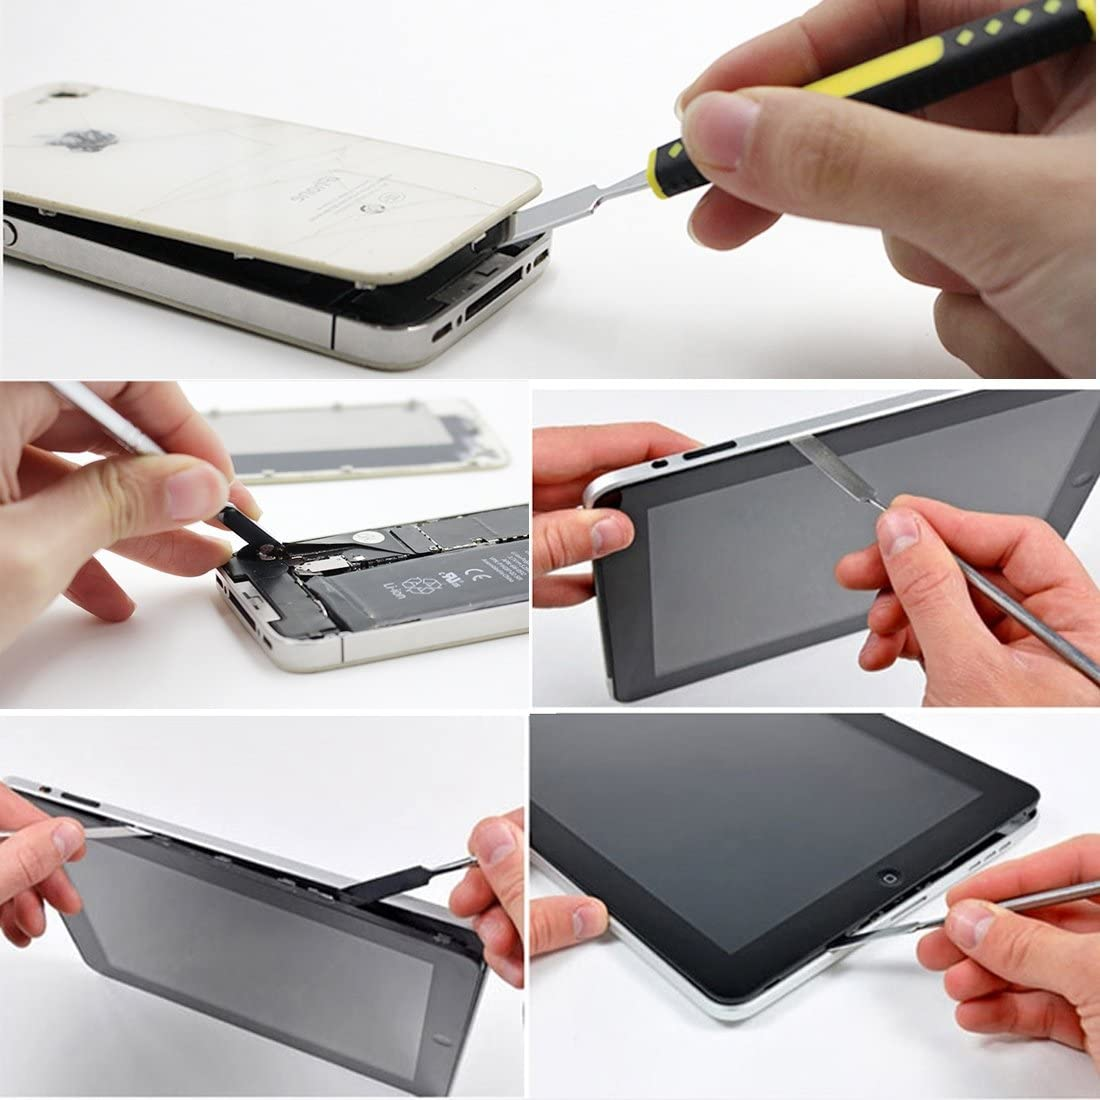 BAIDONGWEIREPA Professional Mobile Phone//Tablet PC Metal Disassembly Rods Repairing Tool Color : Silver Silver Length: 17.5cm